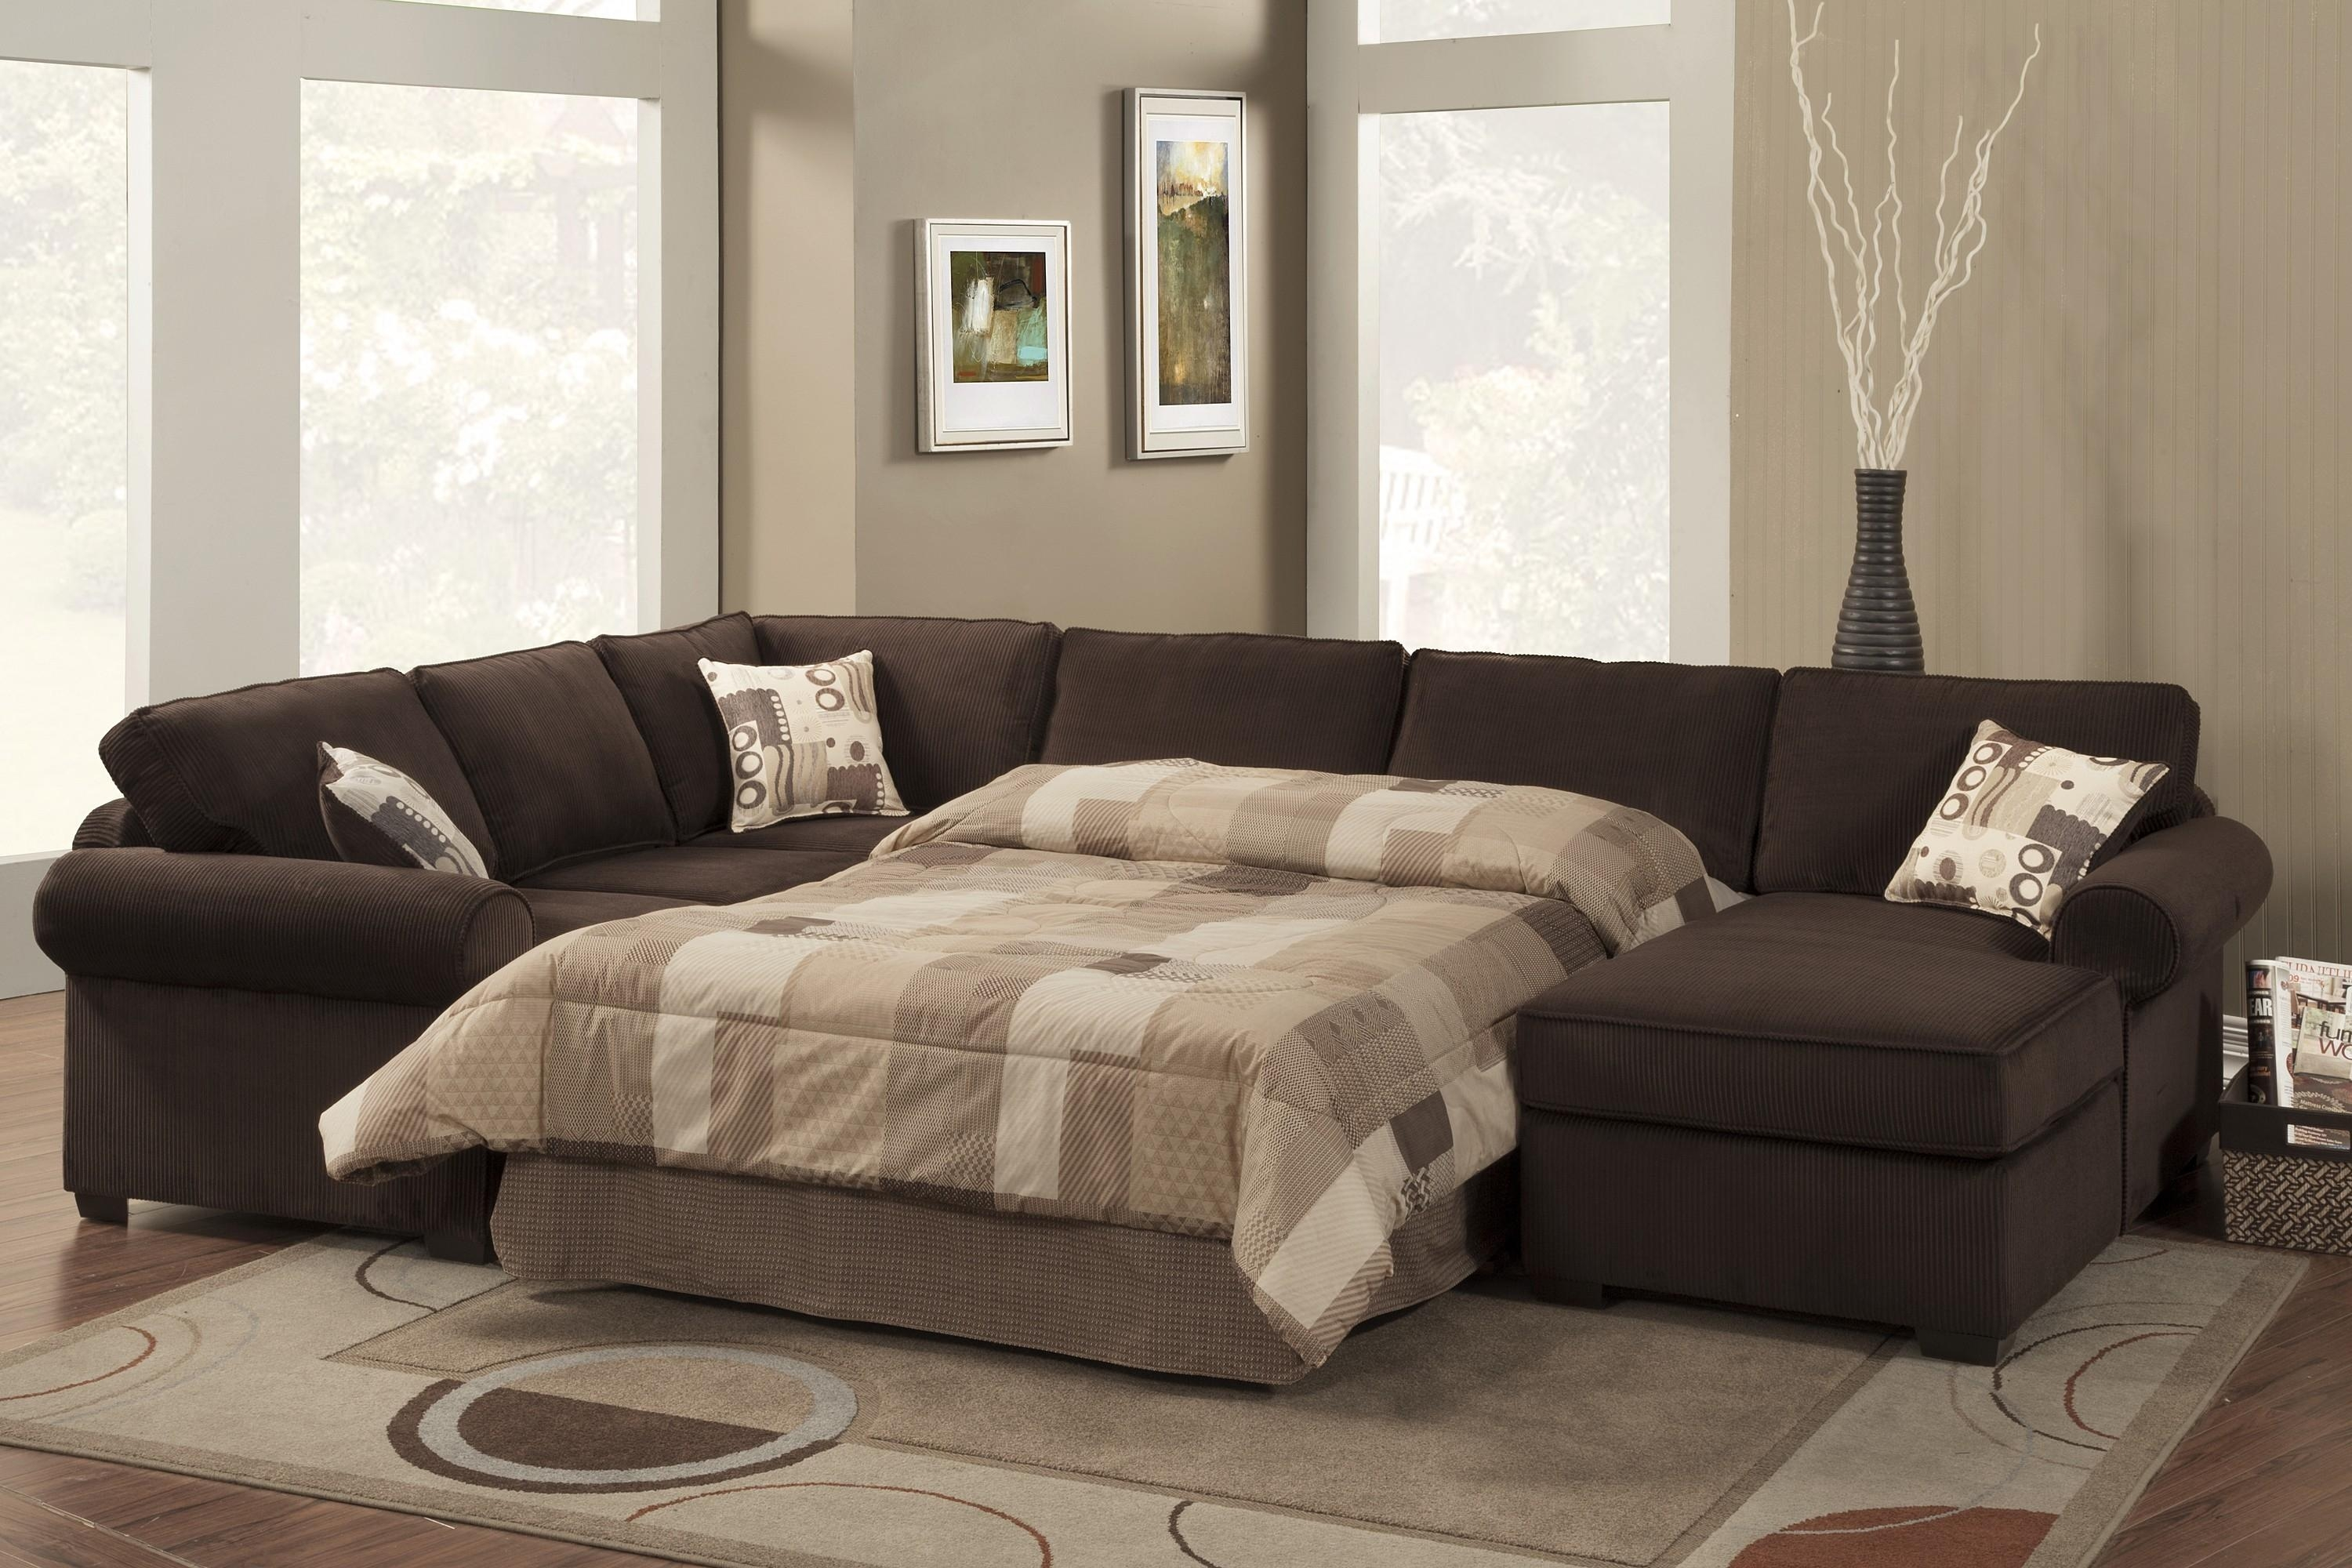 Sofa: Sectional Sleeper | Tufted Sectional Sofa | Tufted Sectional With Tufted Sectional Sofa Chaise (View 15 of 20)